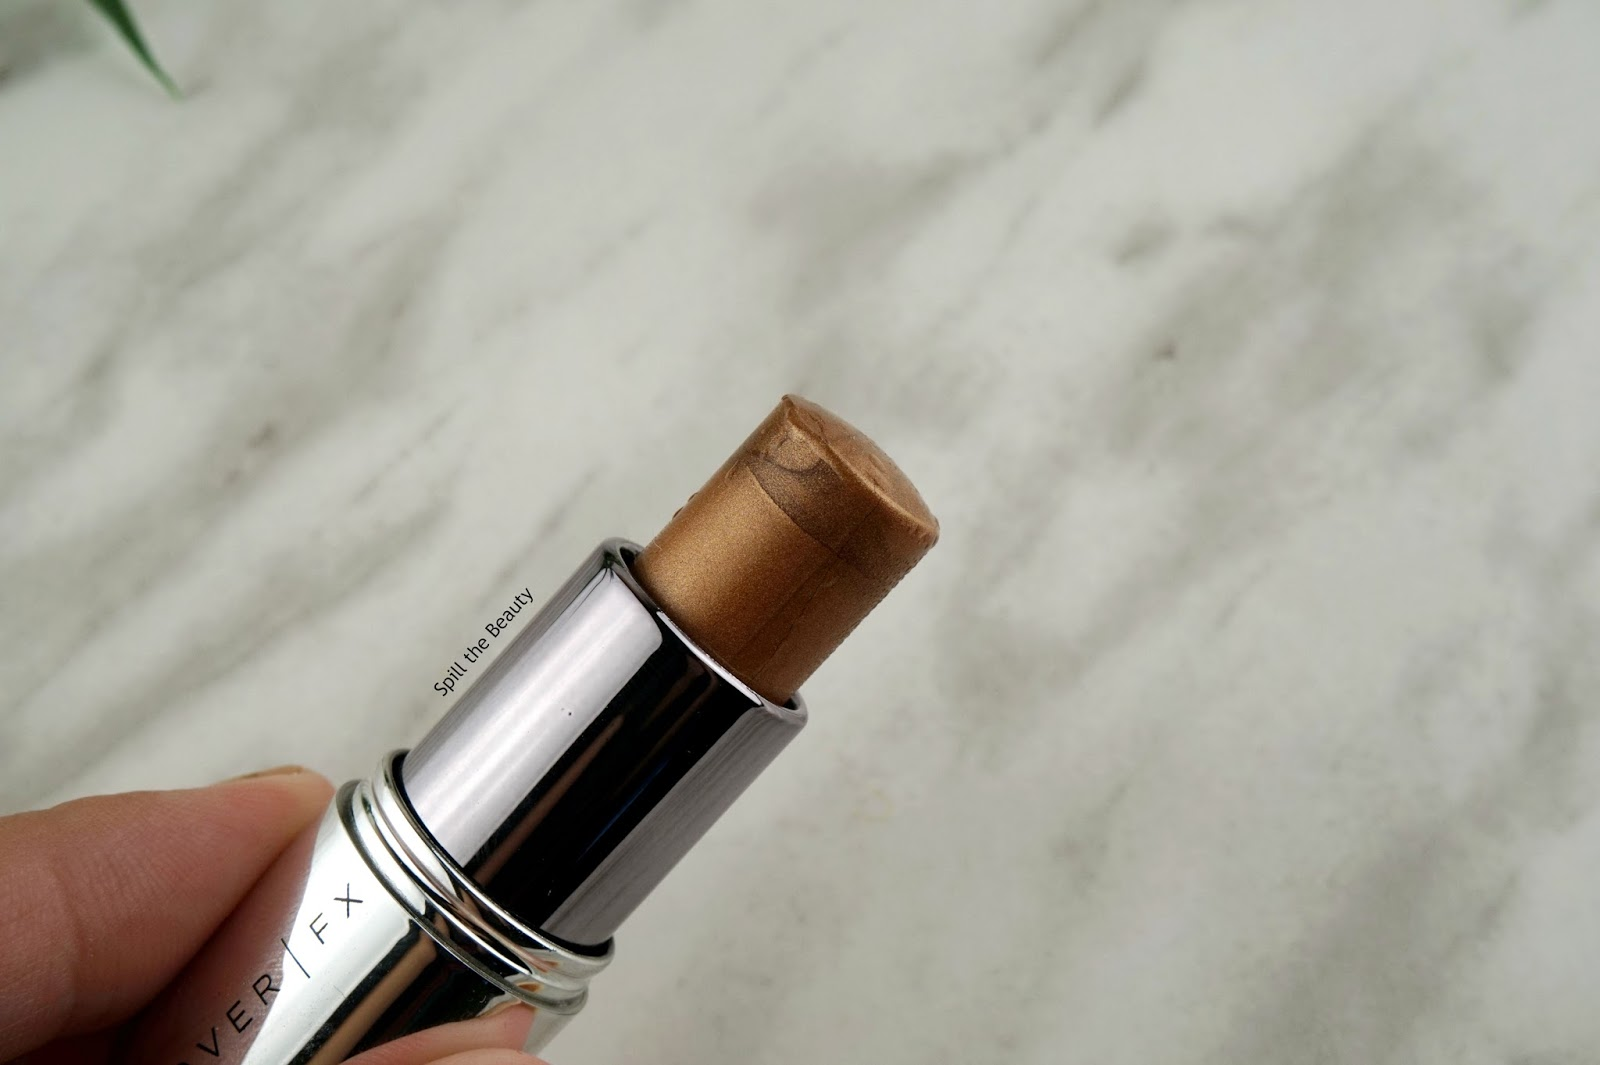 cover fx enhance click review swatches gilded